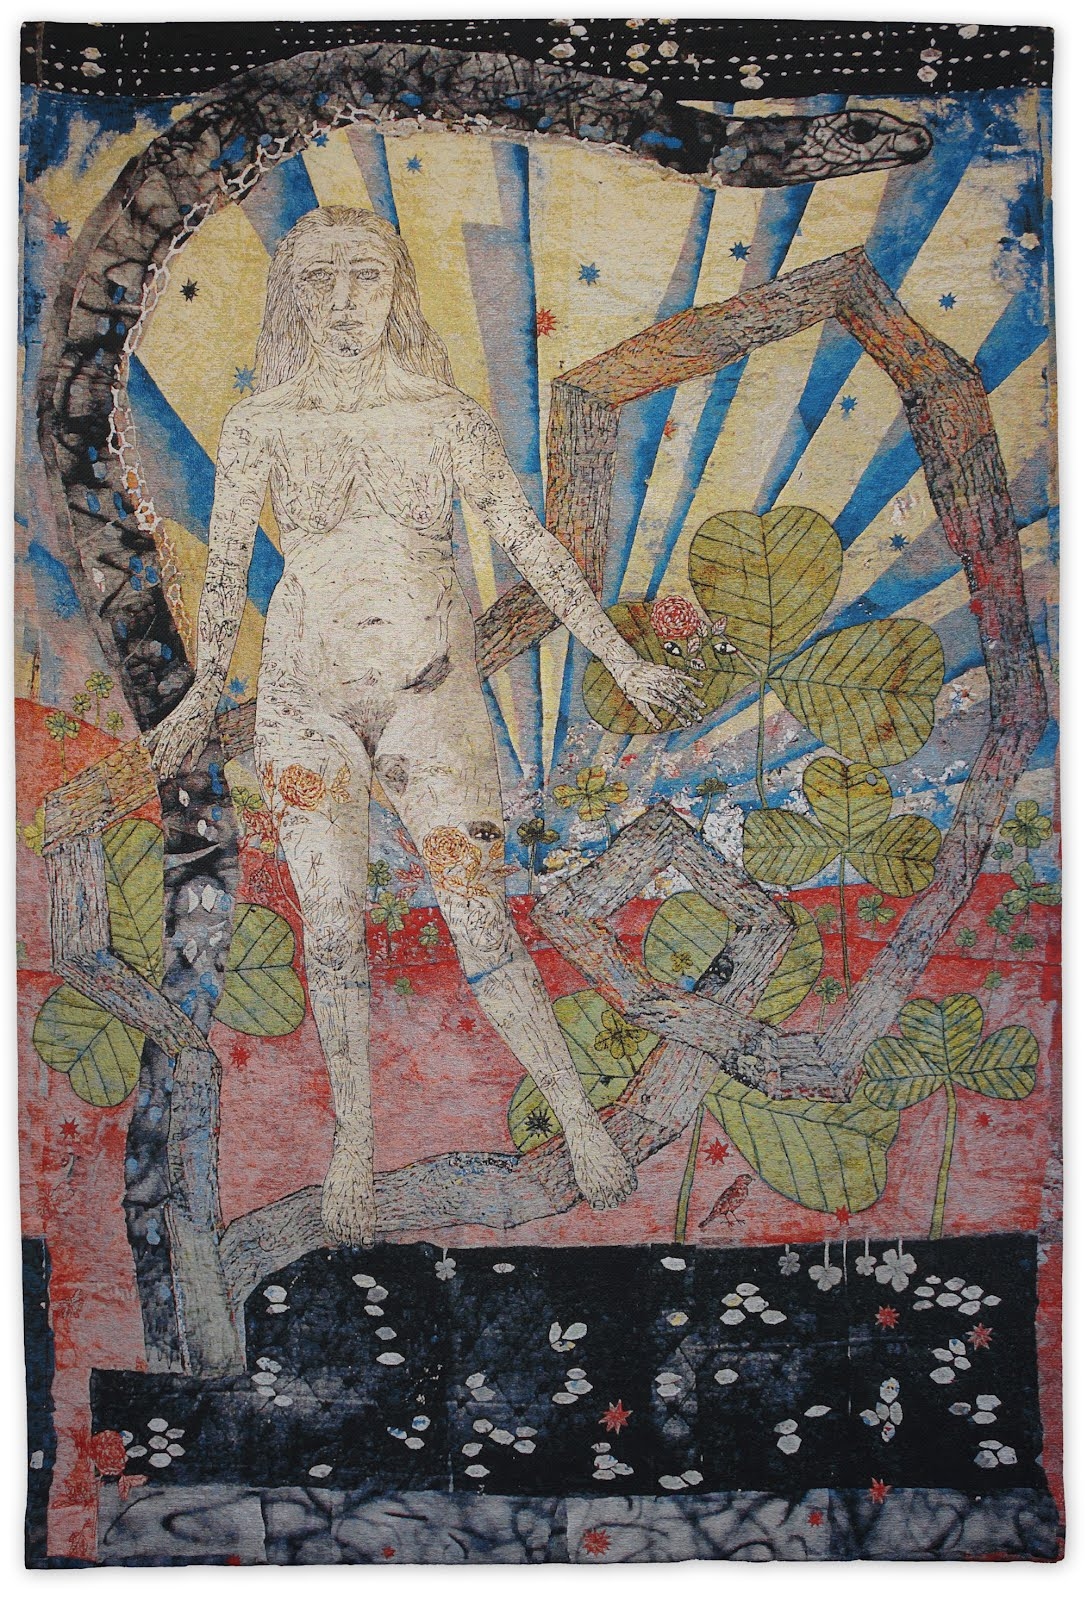 kiki smith Suart galleries january 18 through march 9, 2018 kiki smith and paper: the  body, the muse, and the spirit will present a selection of the artist's drawings and .